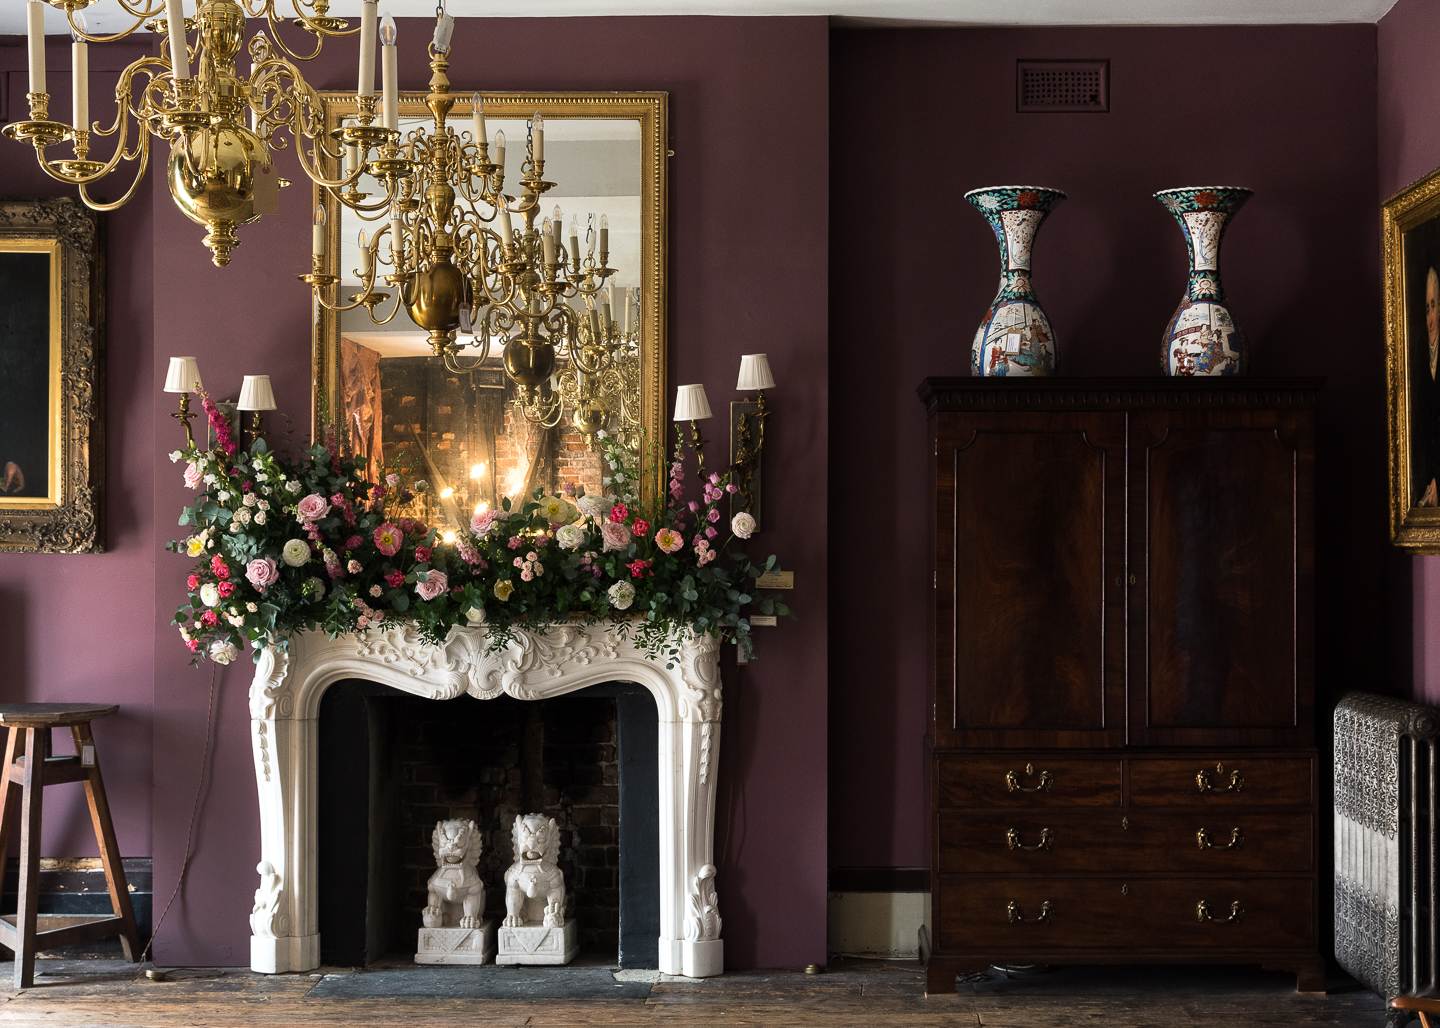 Nineteenth century English Rococo Statuary marble chimneypiece in our Saloon at Brunswick House